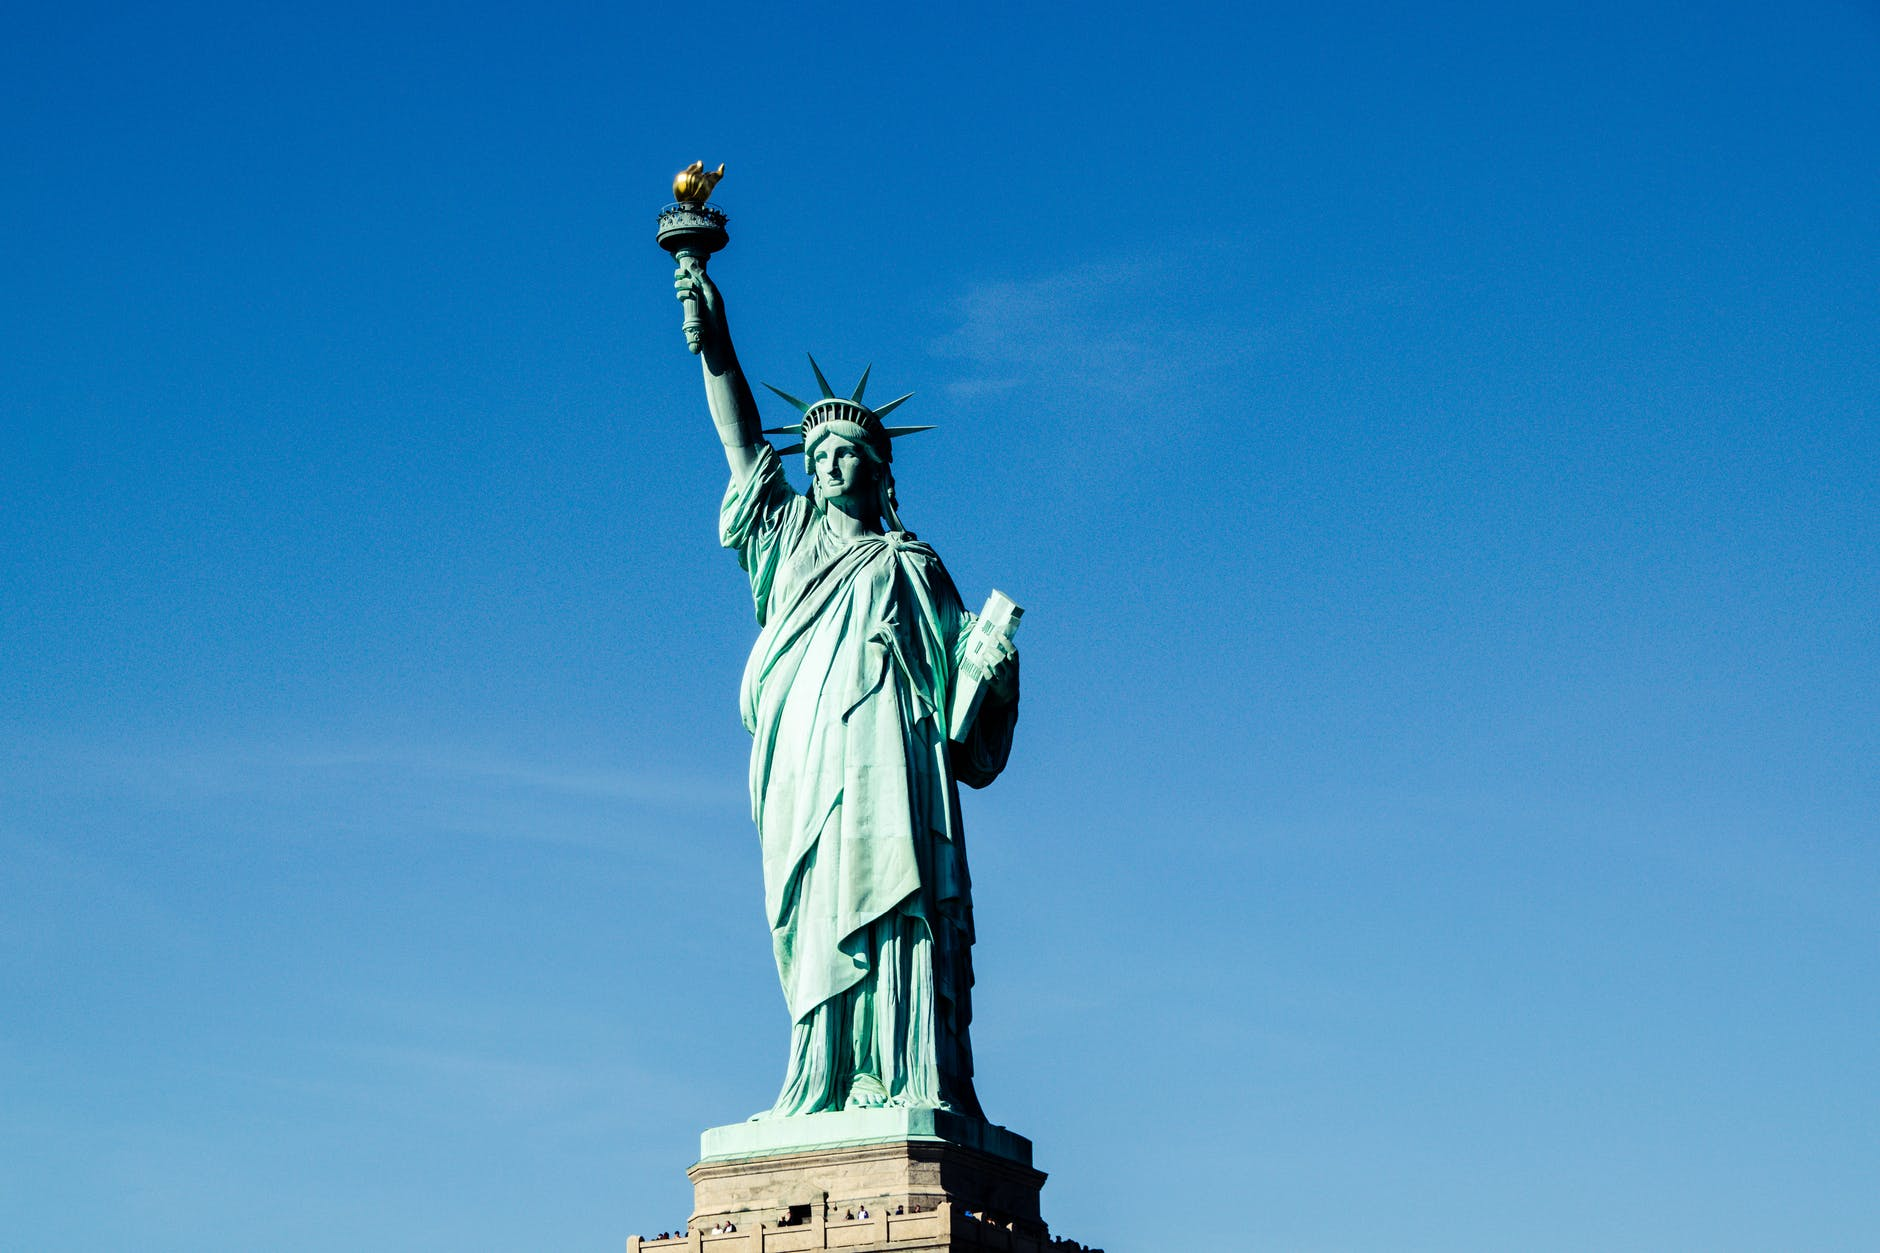 Statue of Liberty Limousine Sightseeing Tour